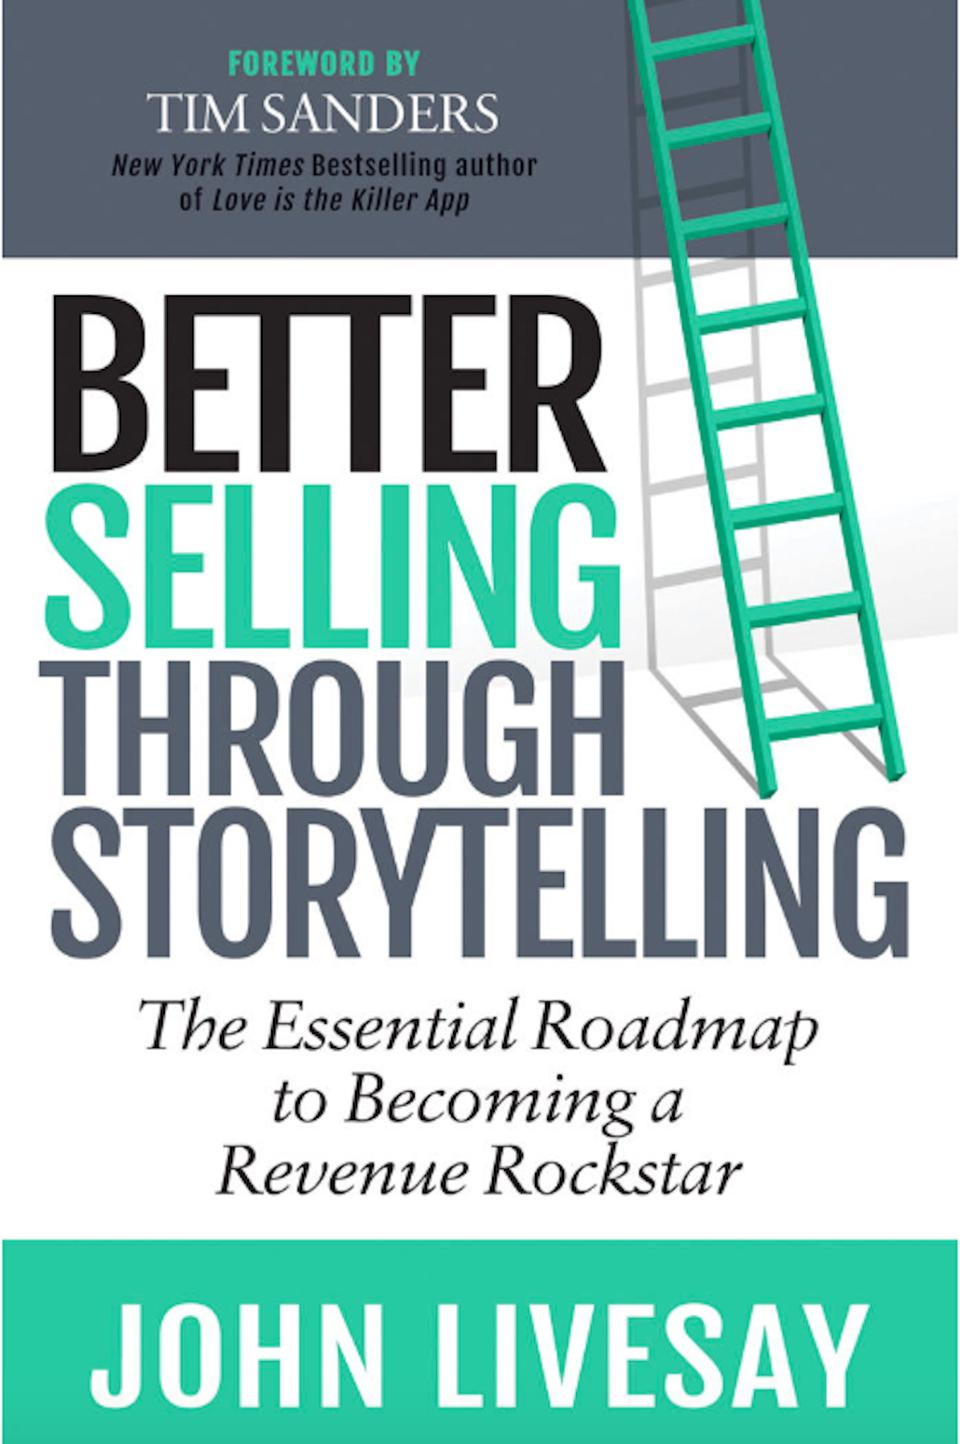 Better Selling Through Storytelling: The Essential Roadmap to Becoming a Revenue Rockstar by John Livesay